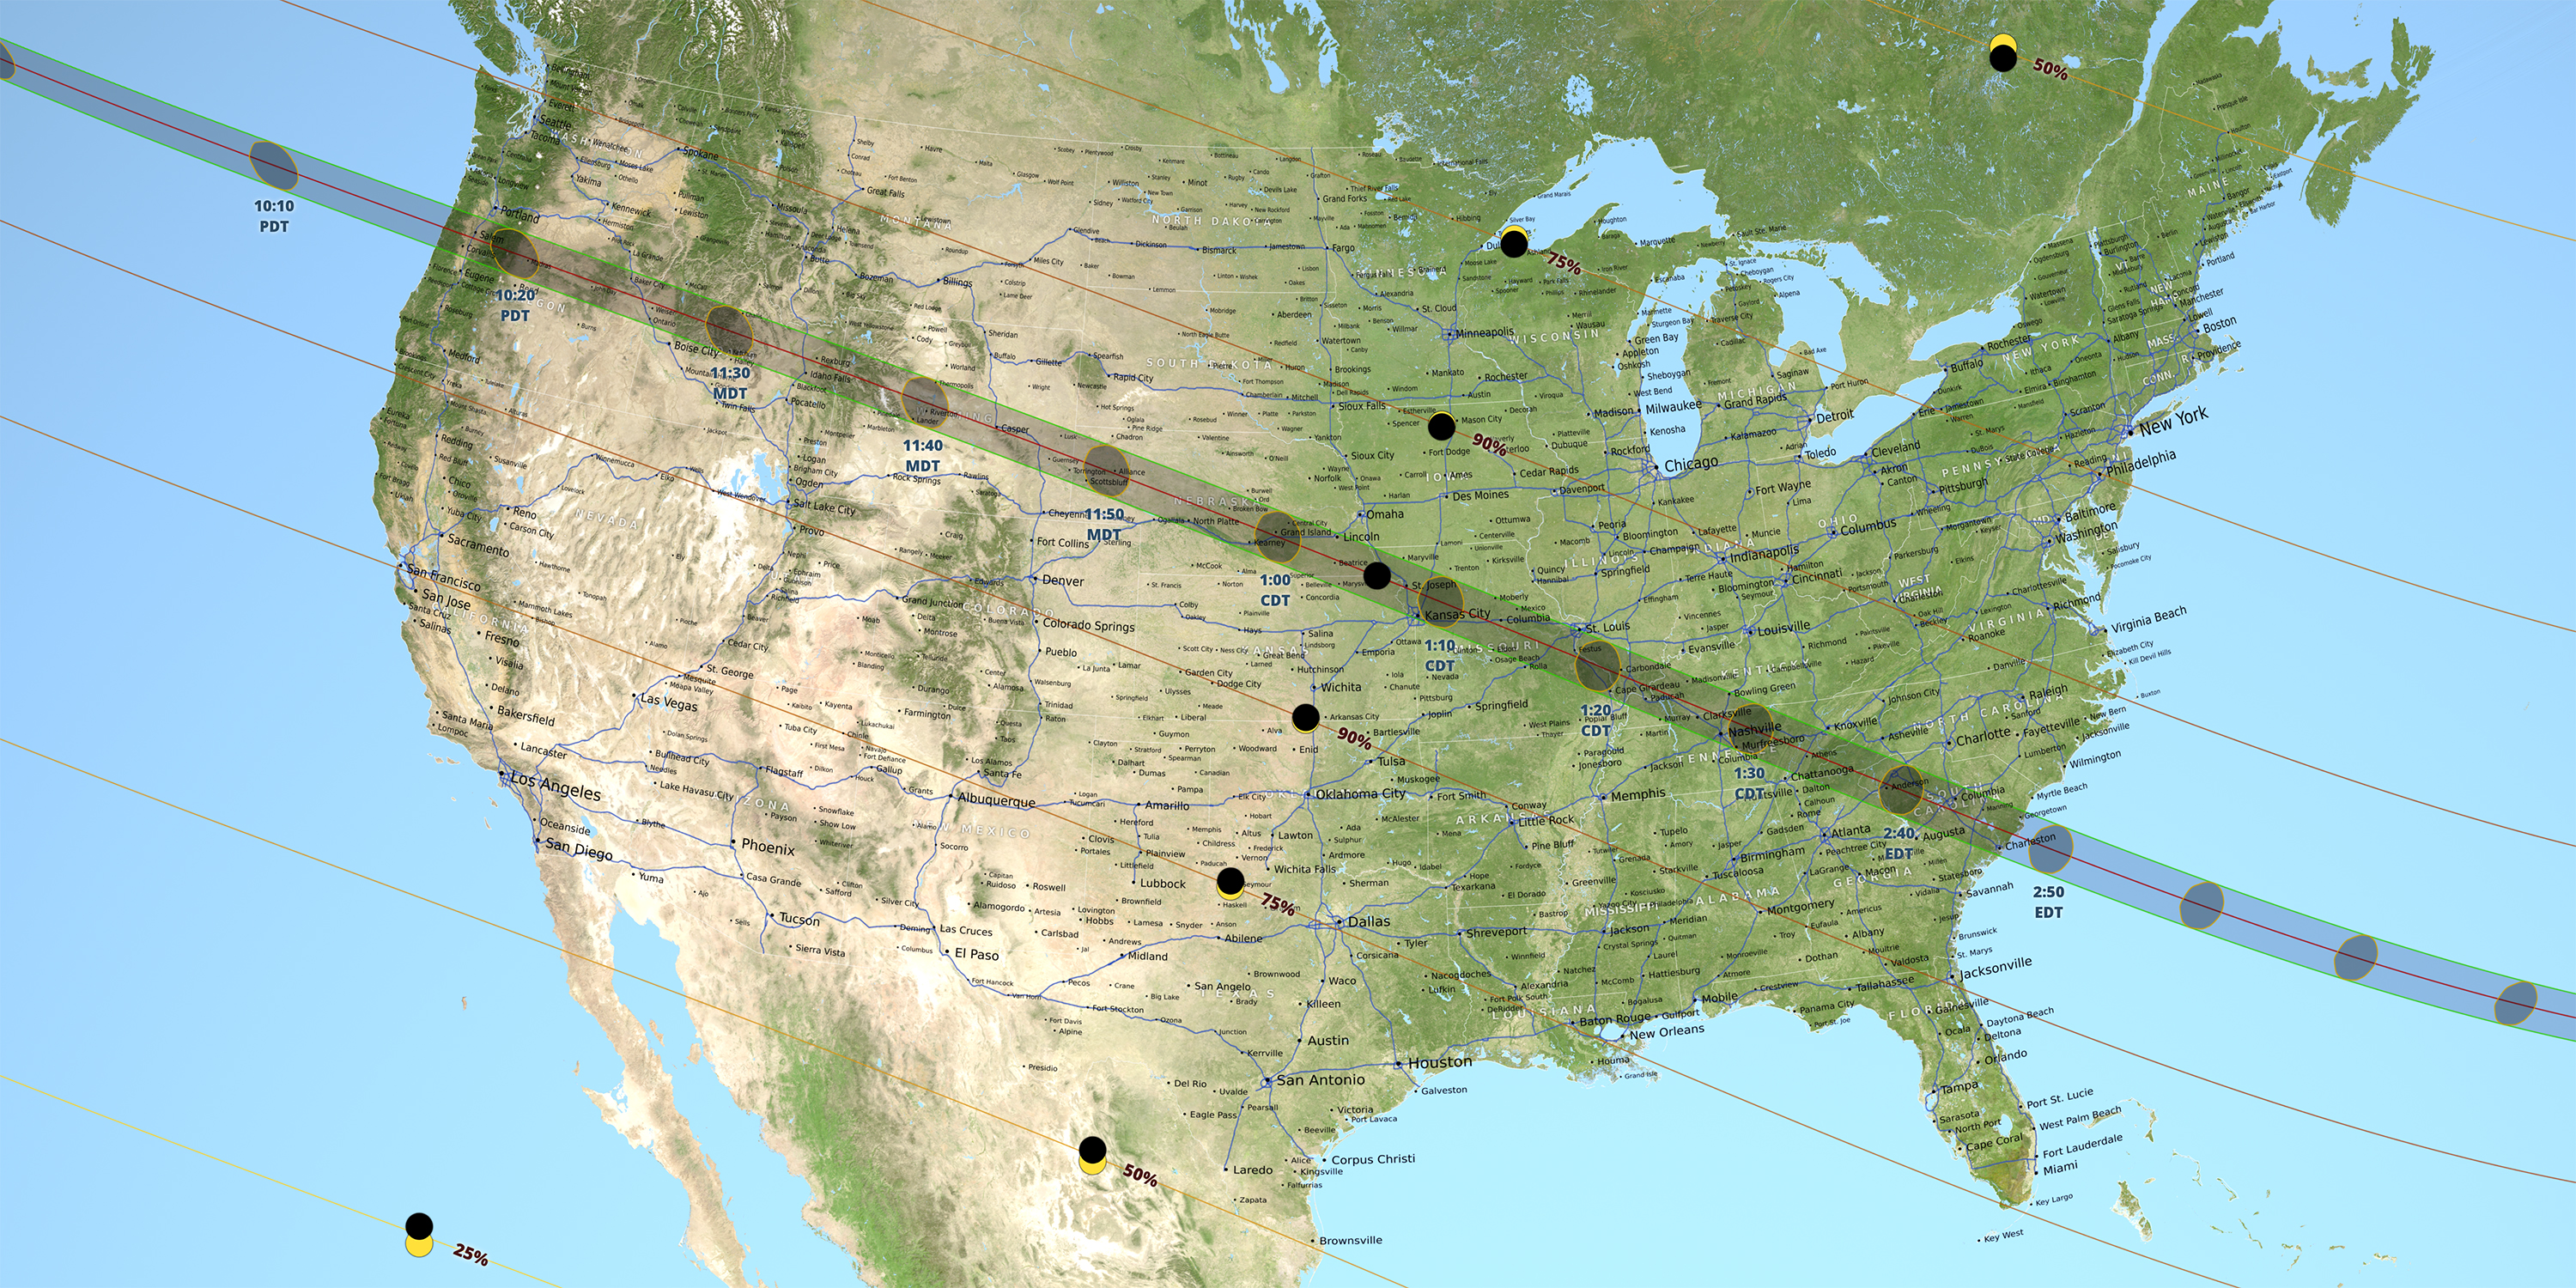 NASA plots 2017 solar eclipse path with best accuracy yet